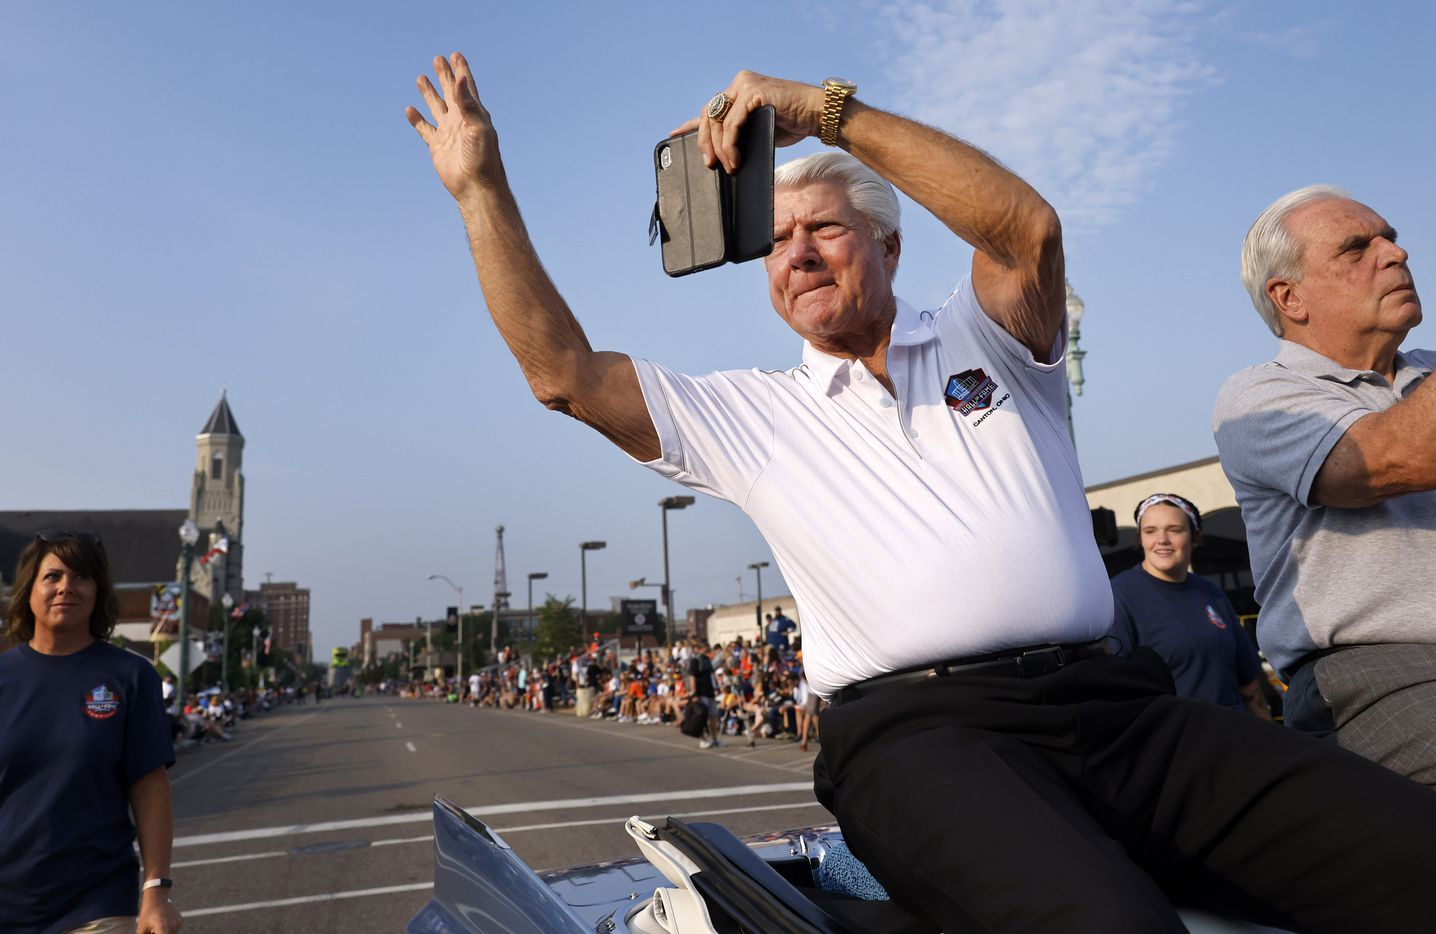 Dallas Cowboys head coach and Pro Football Hall of Fame inductee Jimmy Johnson shoots a video of his experience as he rides in the Canton Repository Grand Parade in downtown Canton, Ohio, Saturday, August 7, 2021. The parade honored newly elected and former members of the Hall, including newcomers and former Dallas Cowboys players Cliff Harris, Drew Pearson and head coach Jimmy Johnson. (Tom Fox/The Dallas Morning News)